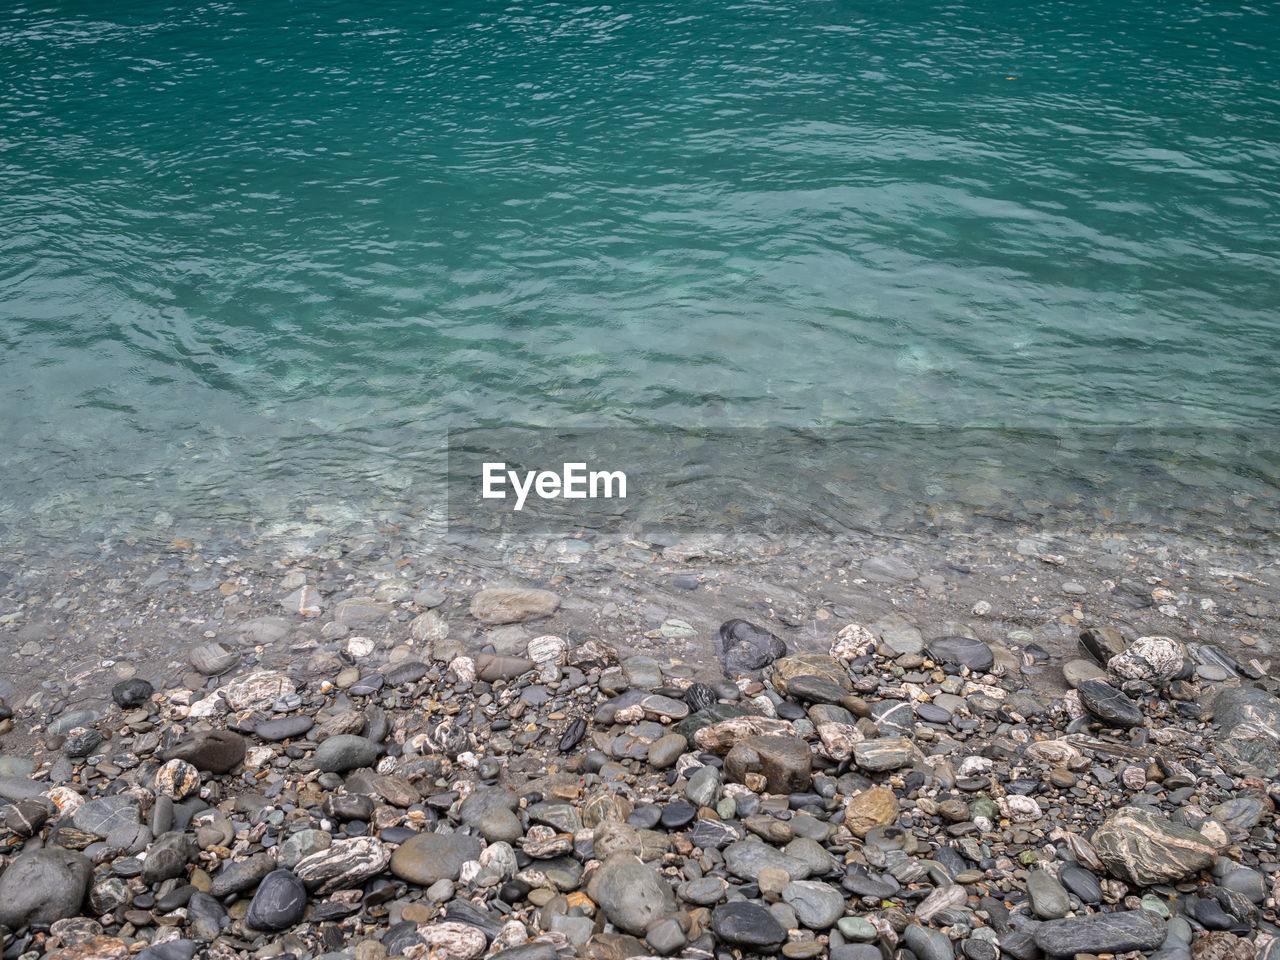 water, sea, beauty in nature, rock, solid, land, nature, day, no people, tranquility, rock - object, tranquil scene, scenics - nature, stone, beach, outdoors, high angle view, idyllic, animal wildlife, pebble, turquoise colored, shallow, purity